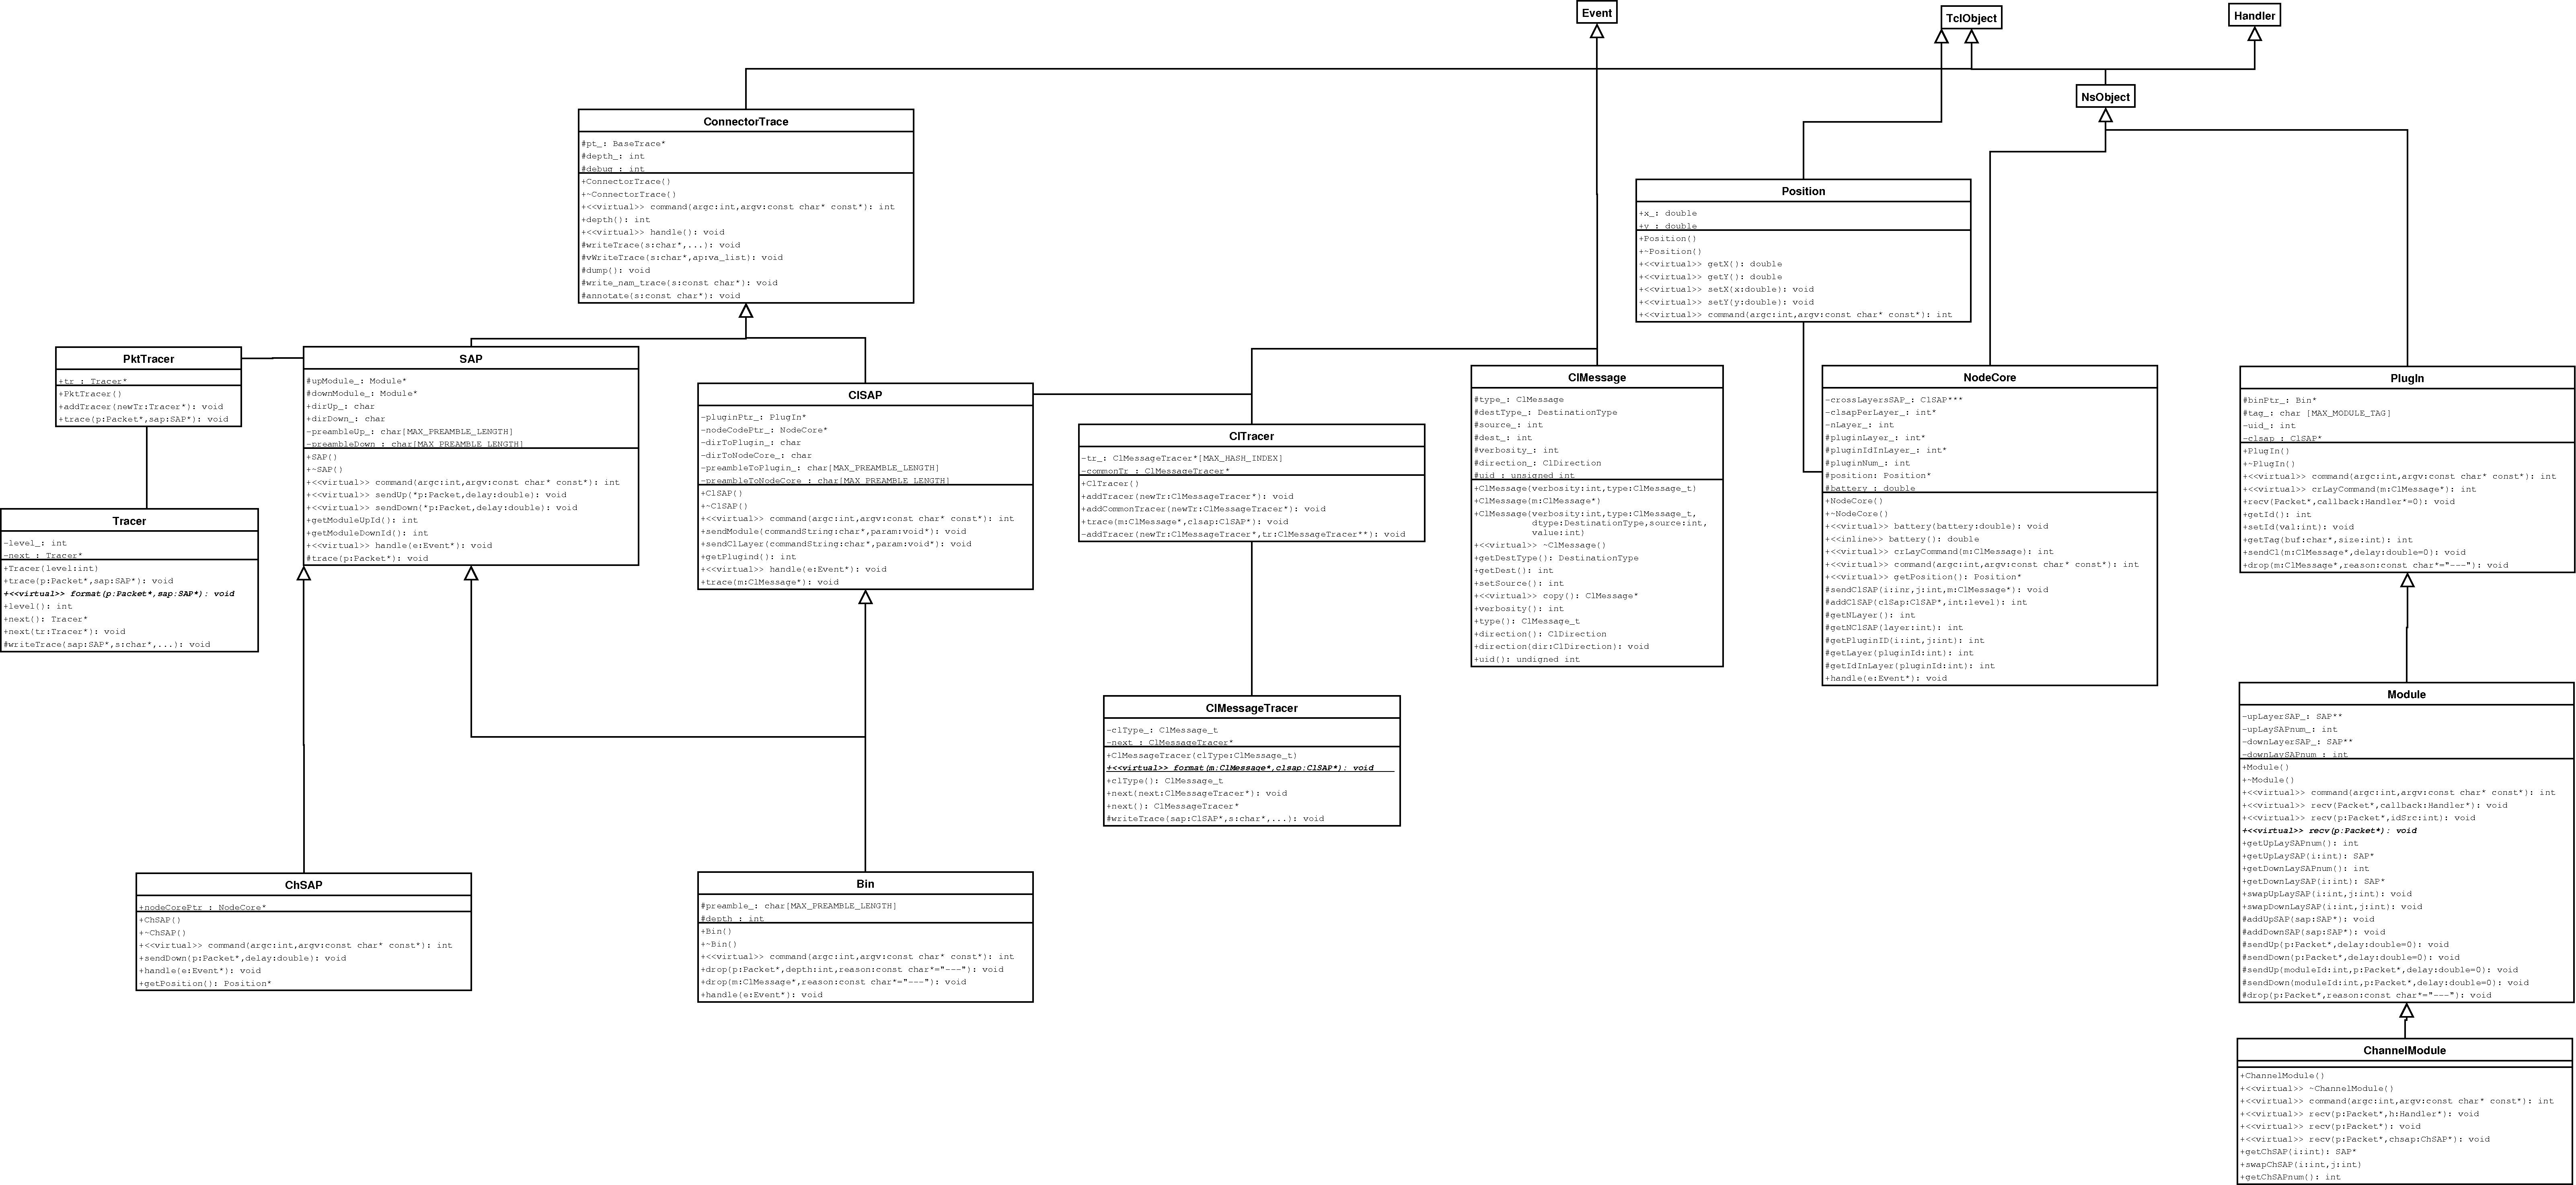 NS-MIRACLE library: UML Class Diagram